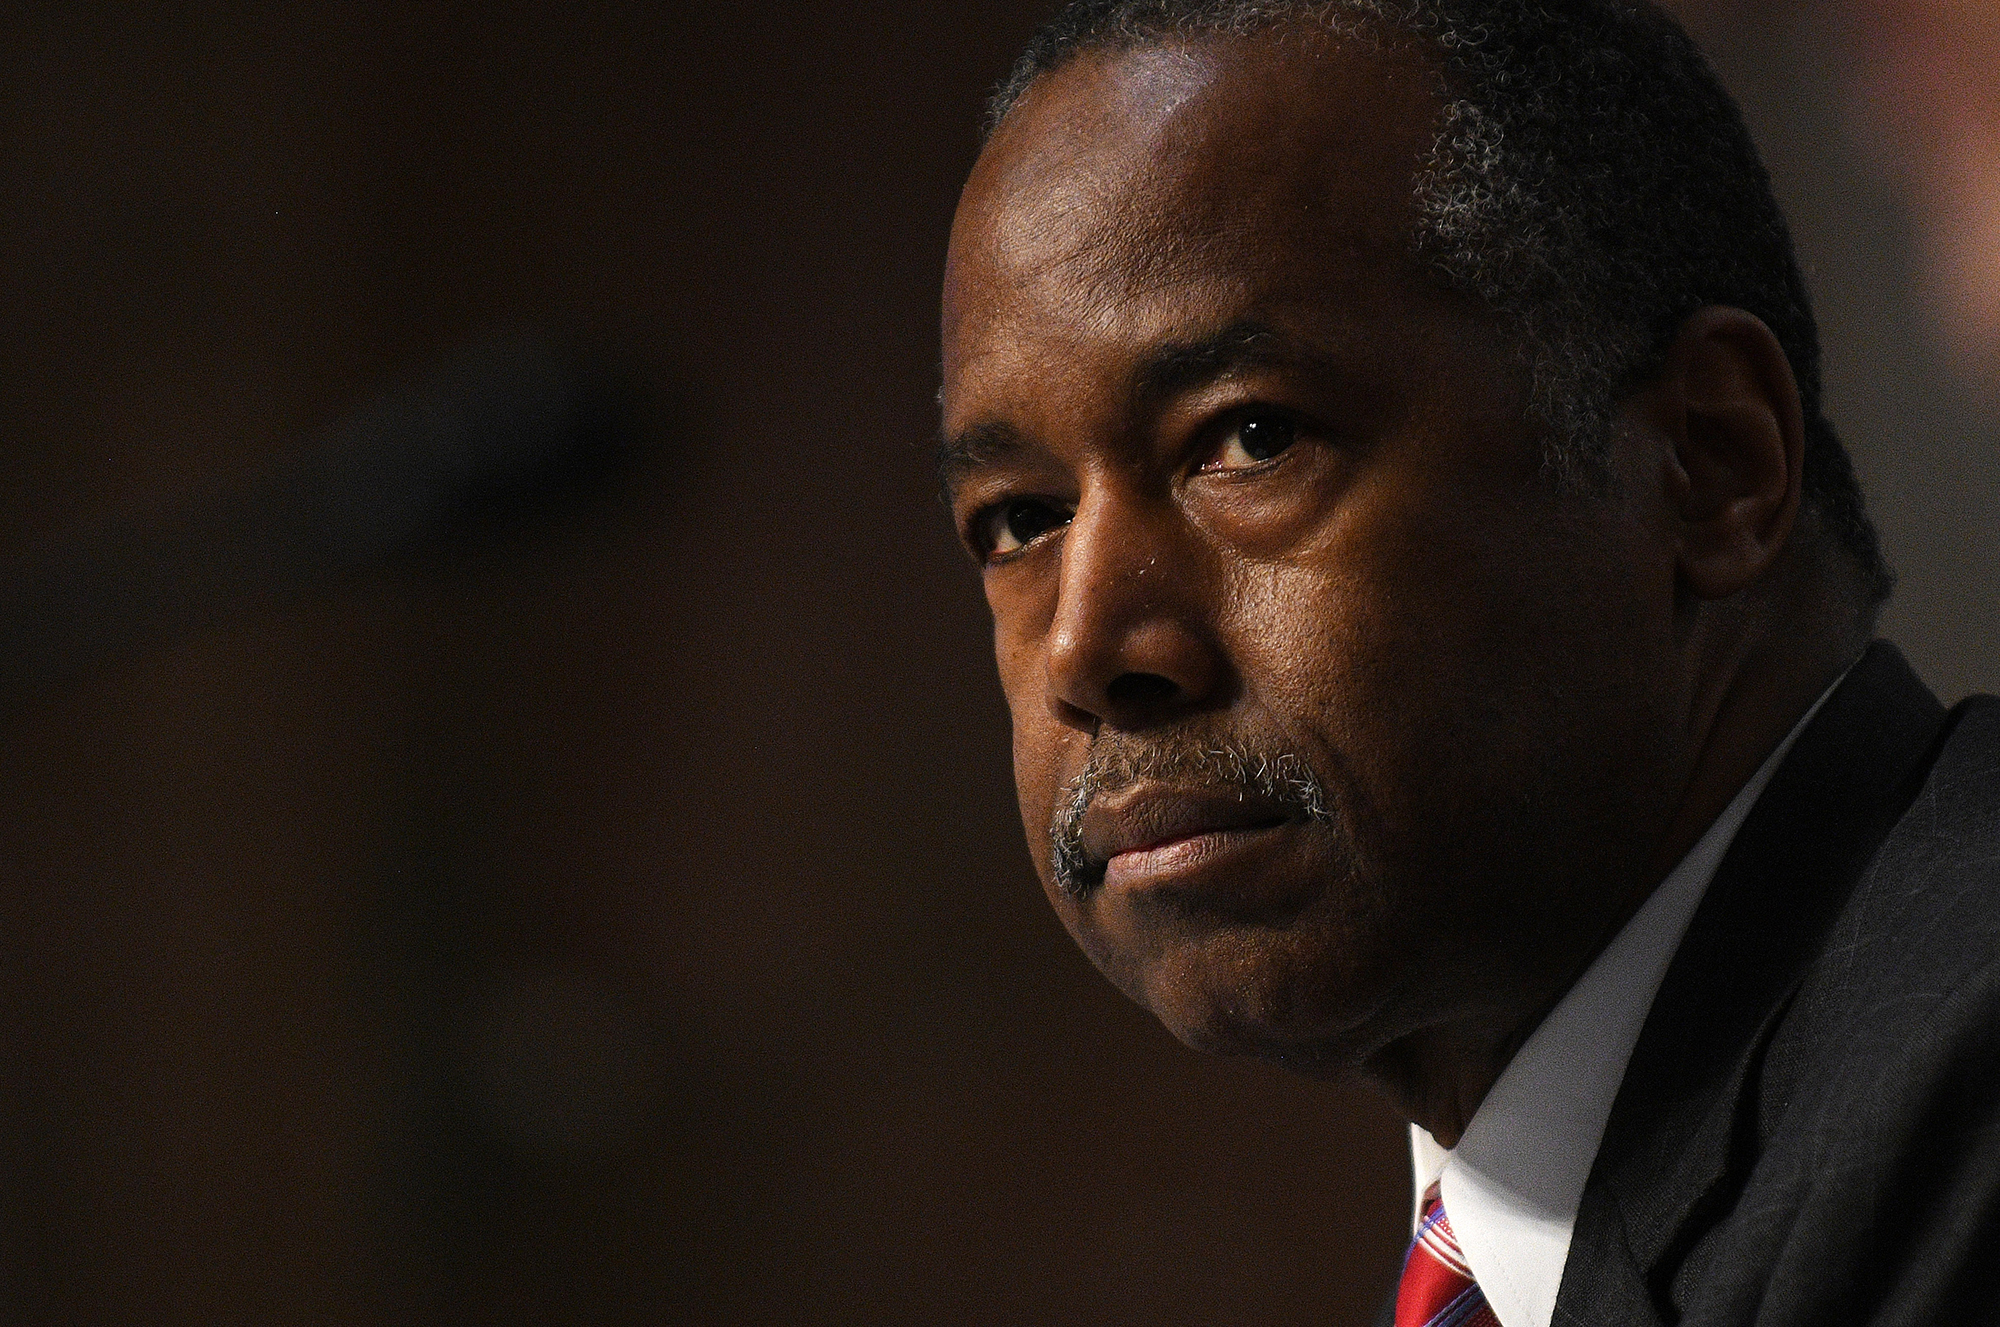 Ben Carson during a testimony before the U.S. Senate Committee on Banking, Housing, and Urban Affairs to examine housing regulations during the pandemic on Capitol Hill in Washington, DC., on June 9, 2020.